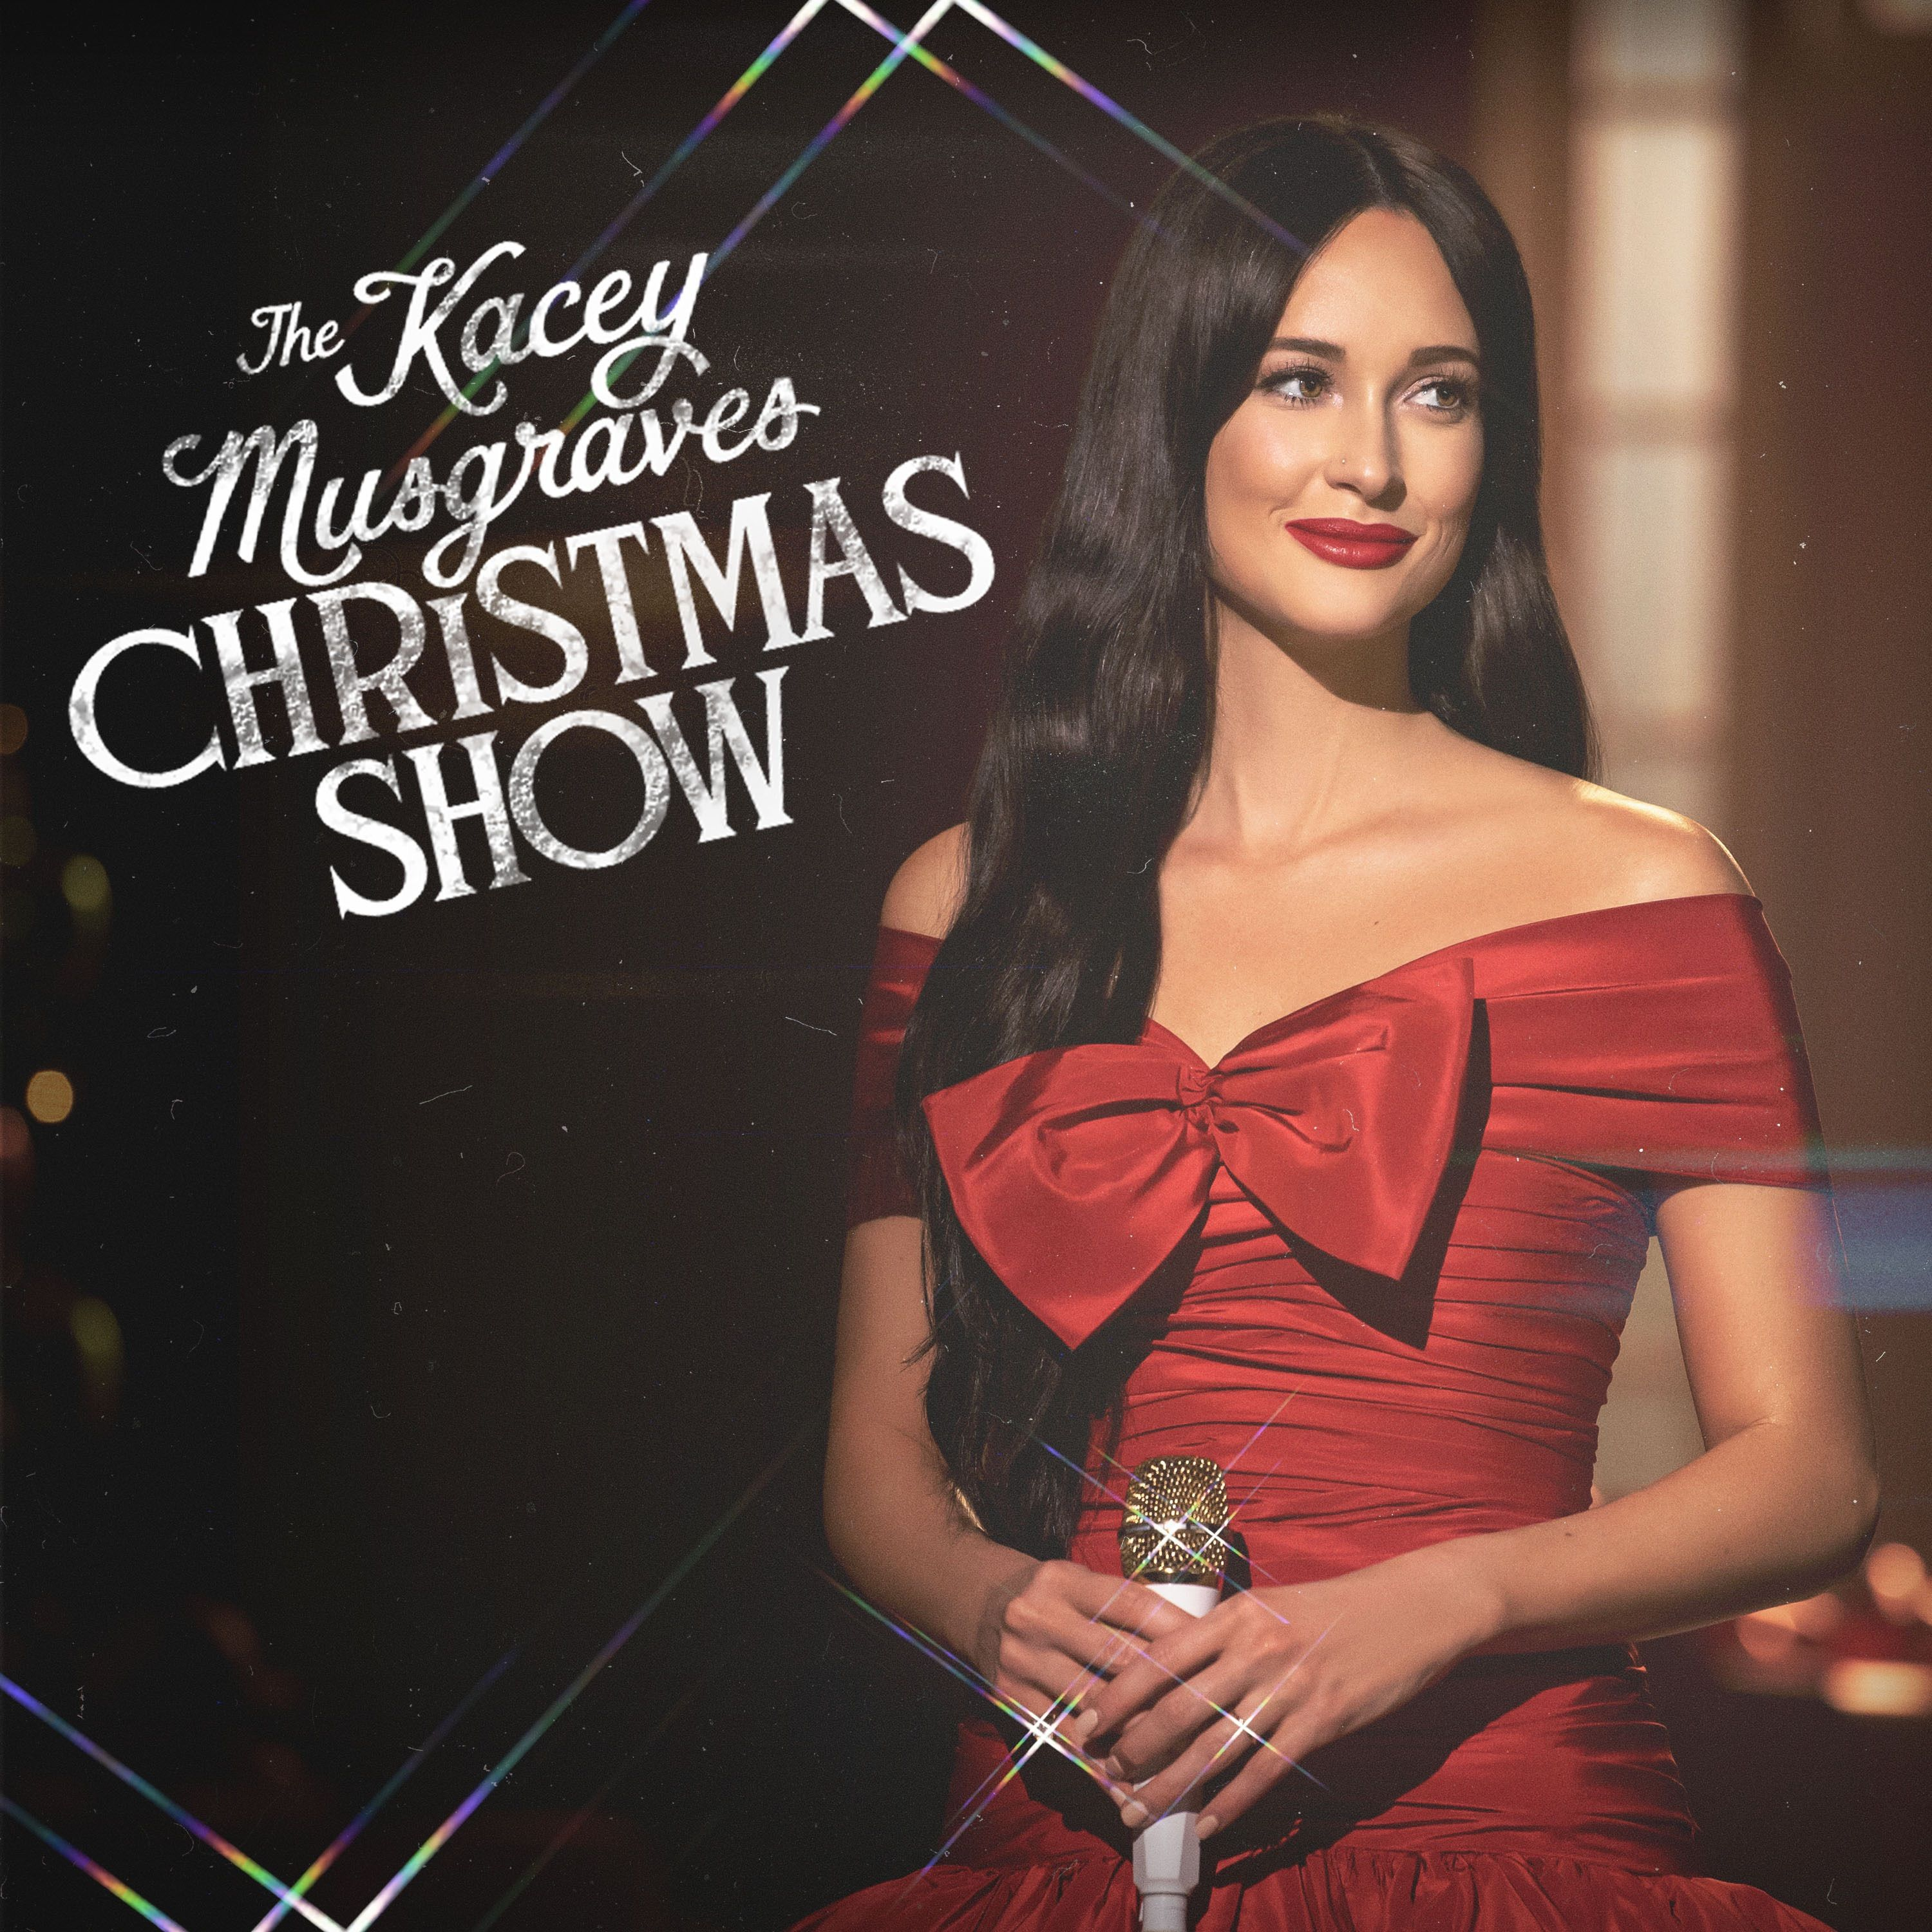 Kacey Musgraves - The Kacey Musgraves Christmas Show - Album Cover